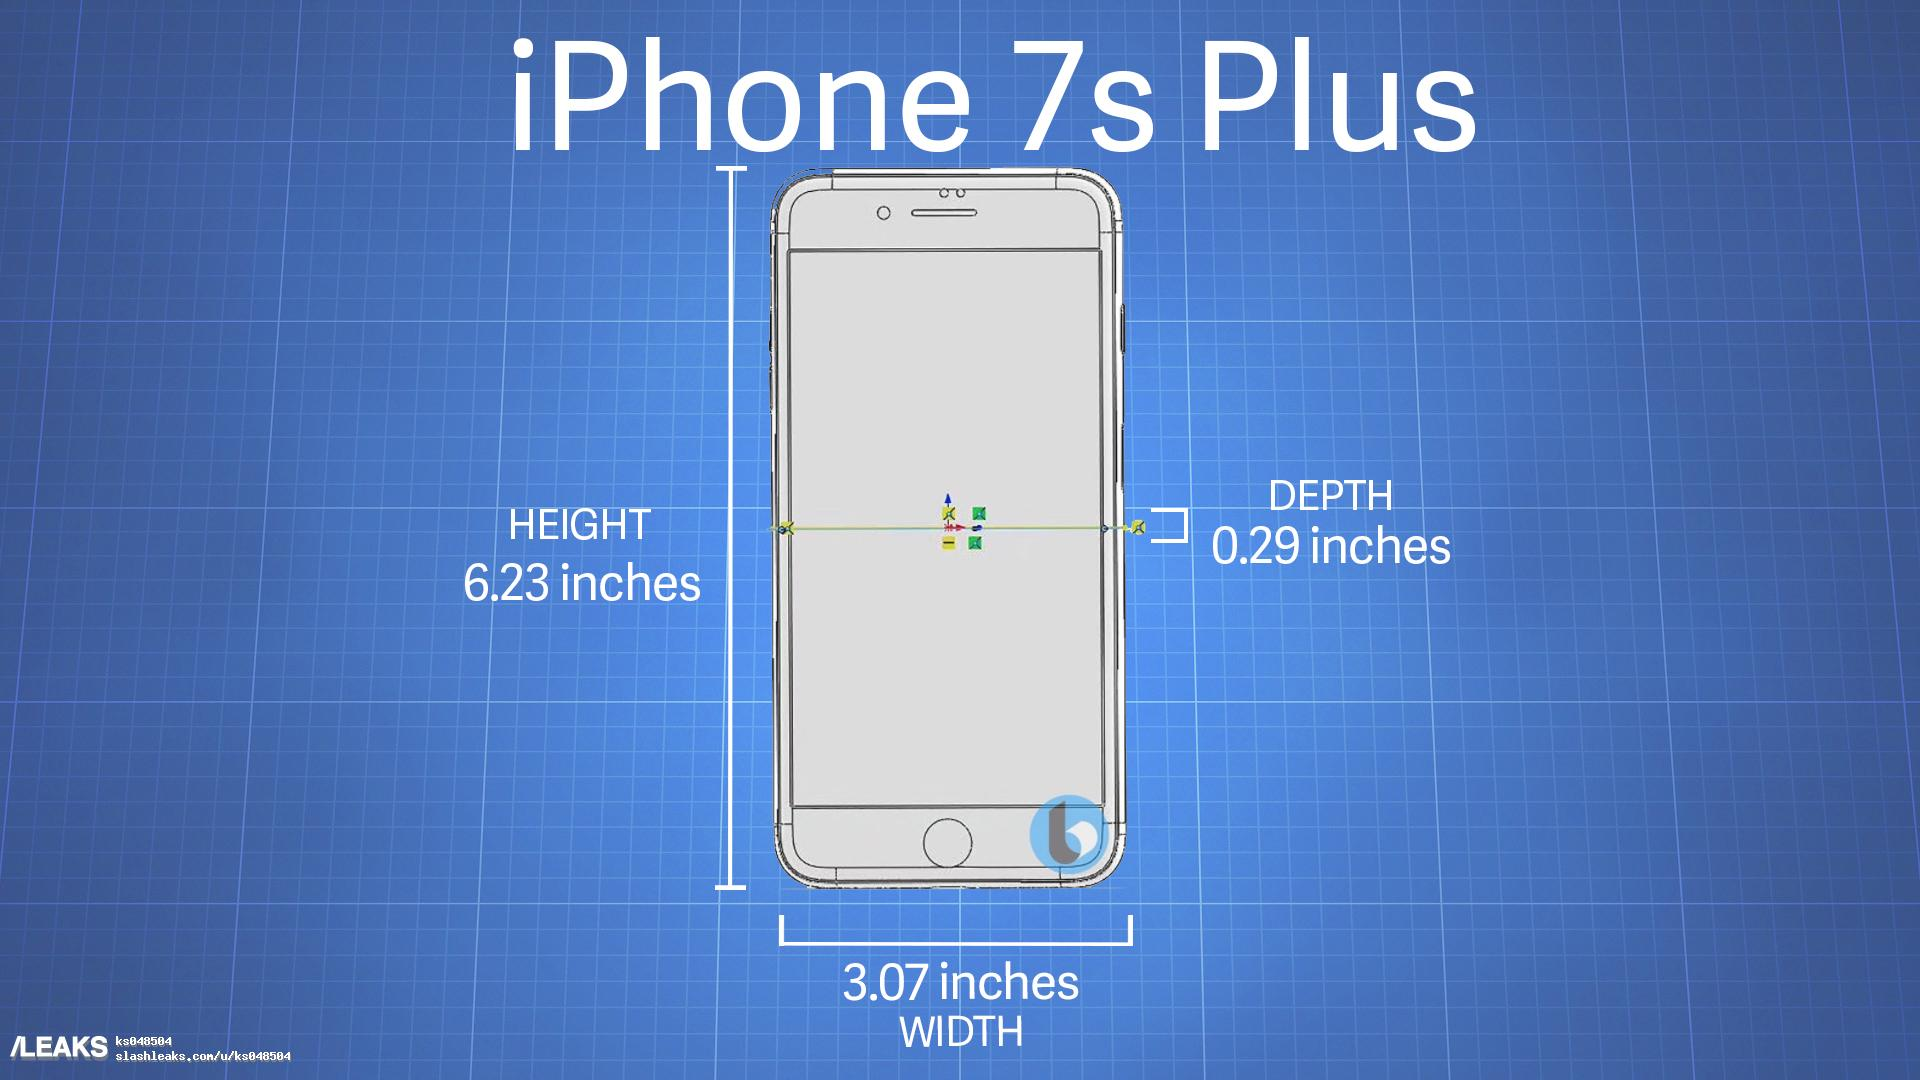 Iphone 7s And 7s Plus Dimensions Leak Hint At Glass Body